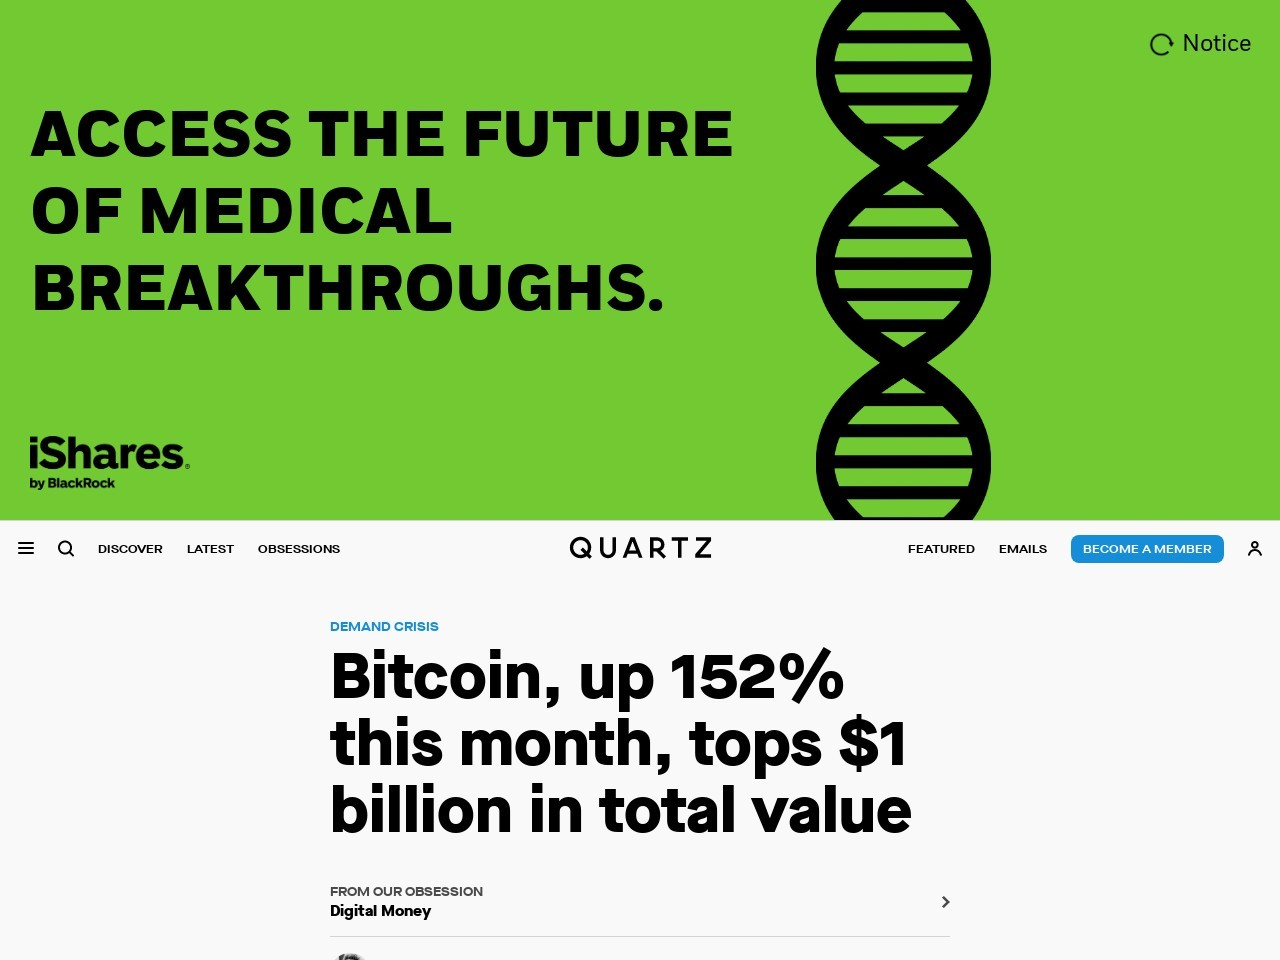 Bitcoin, up 152% this month, tops $1 billion in total value